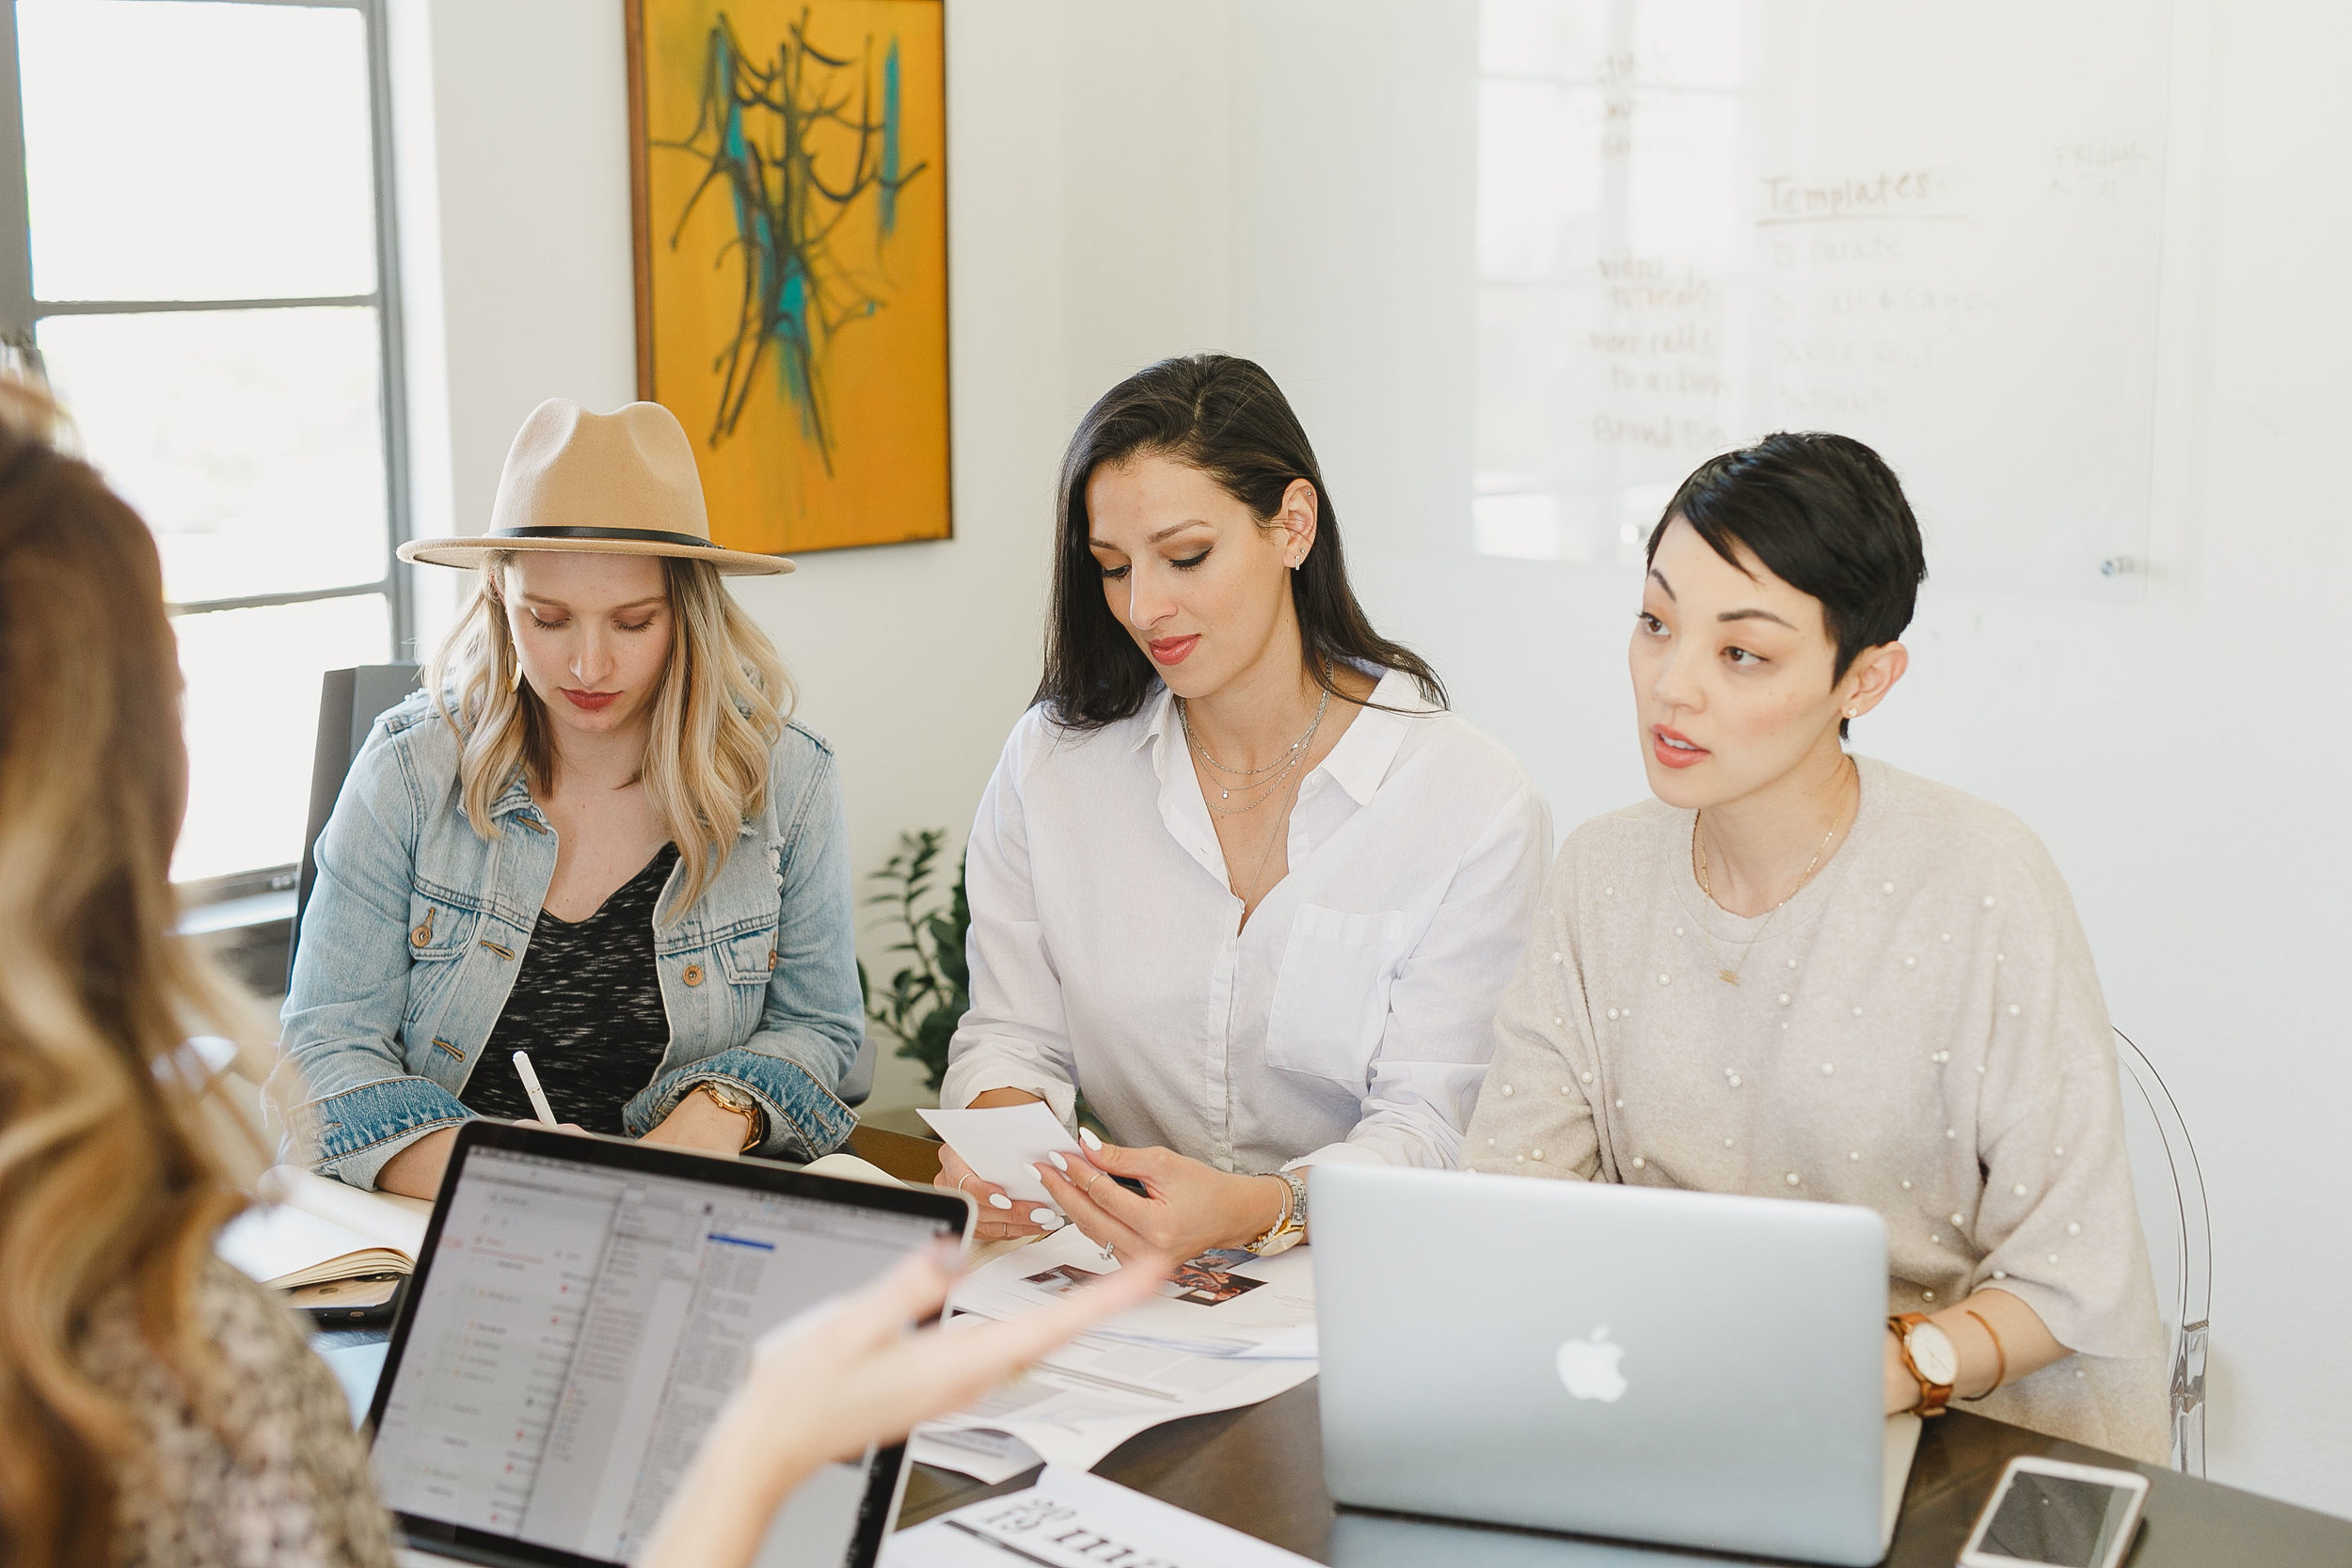 WHAT TO EXPECT - Our team will go live in our private Facebook Group every weekday morning Monday - Friday to go over tips & tasks for you to complete in order to launch your website. We'll also have group feedback and critiques. This is a fast-paced crash course to get your site up and live and on the web.